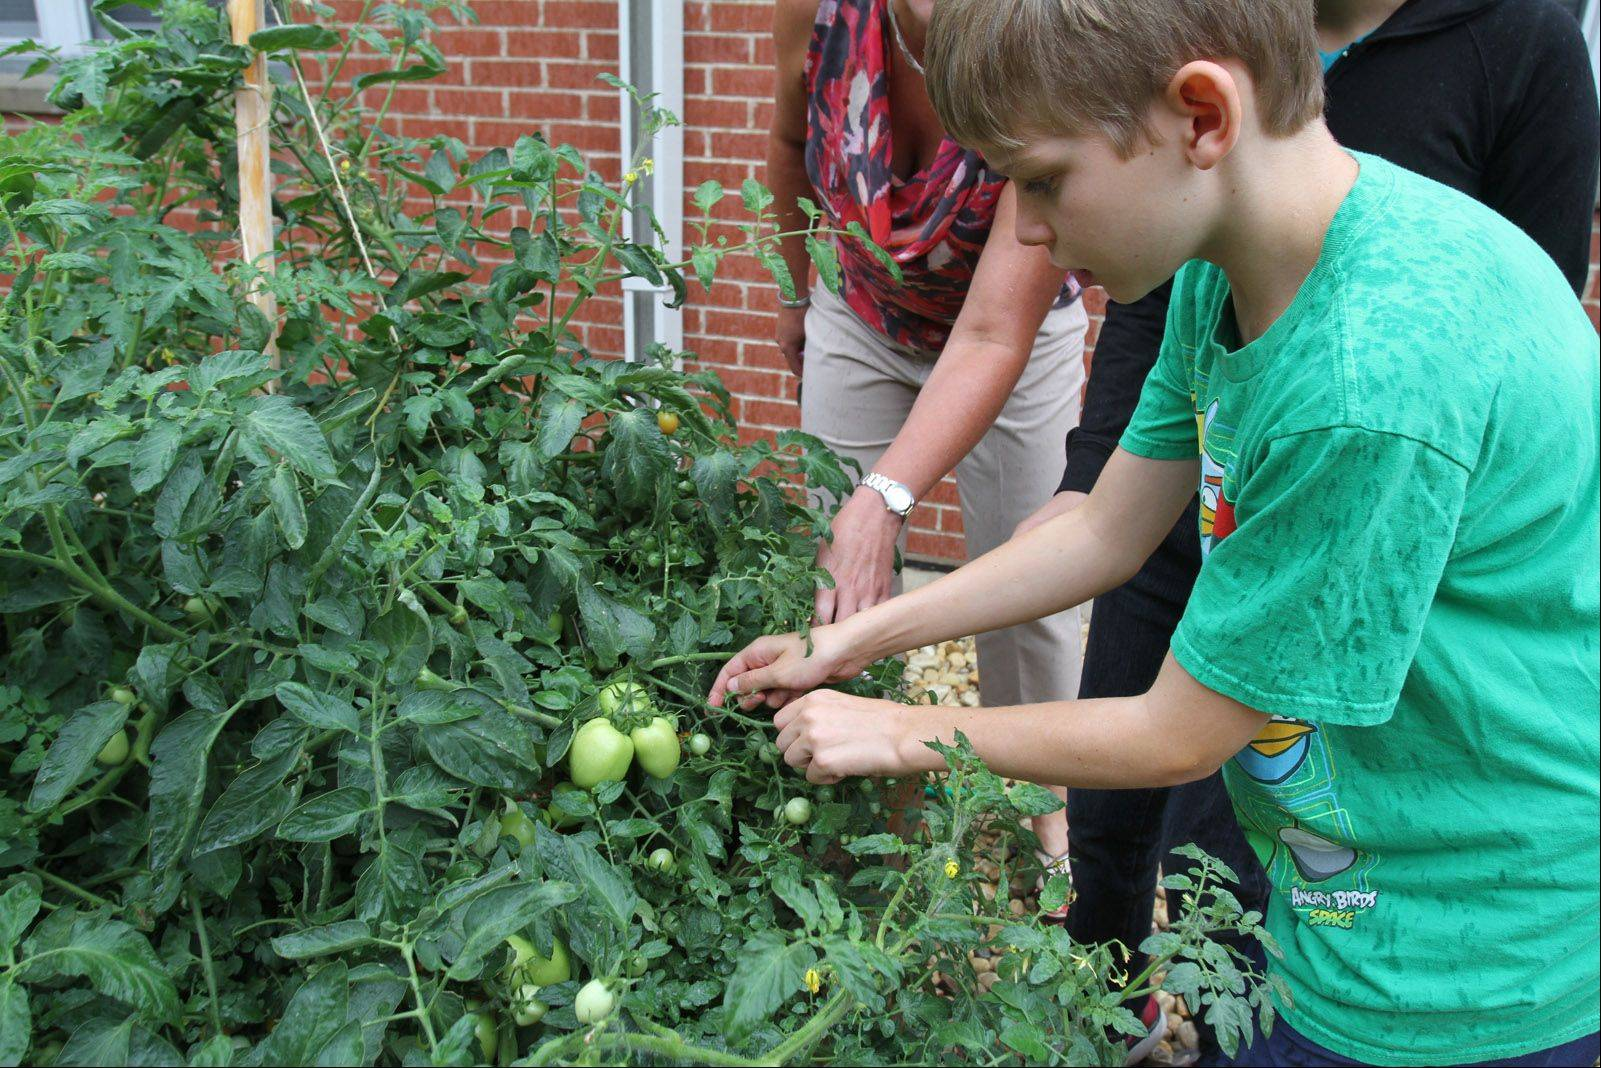 Summer school student Jack Ausnehmer, a seventh-grader at London Middle School, picks tomatoes to benefit needy families through the Giving Garden program.